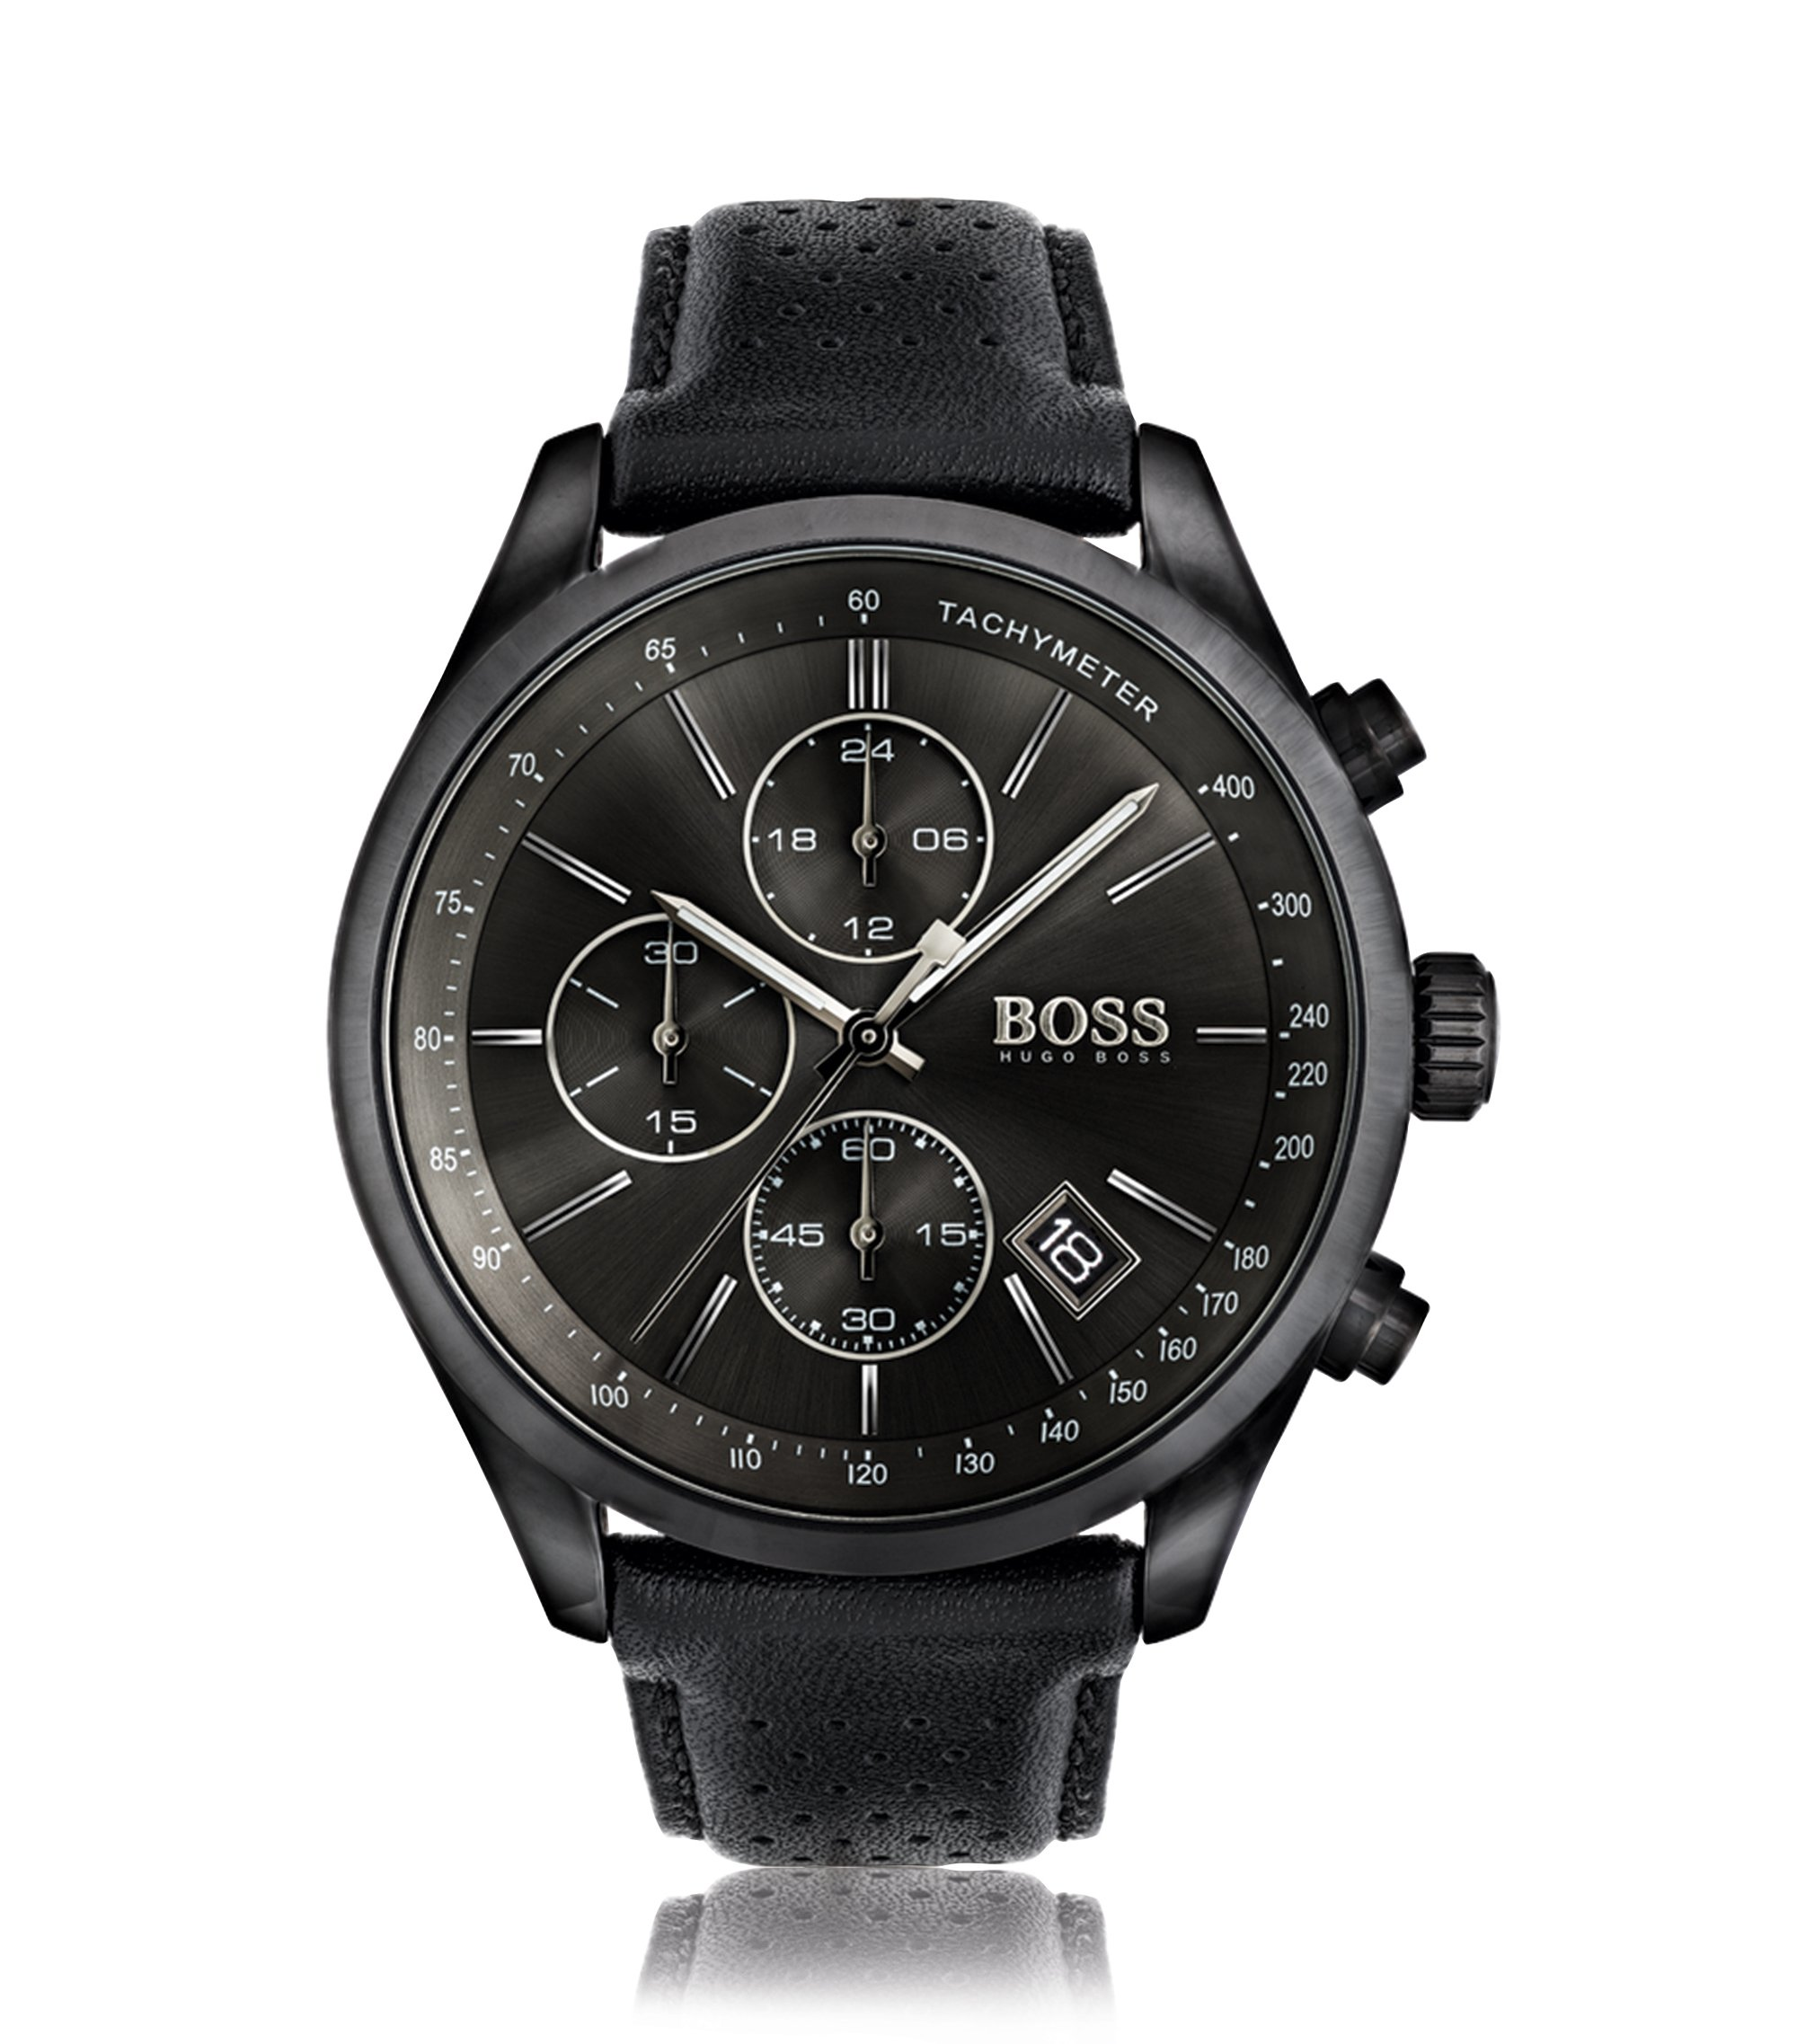 Blackened stainless steel sportswatch with black dial and perforated leather strap, Black